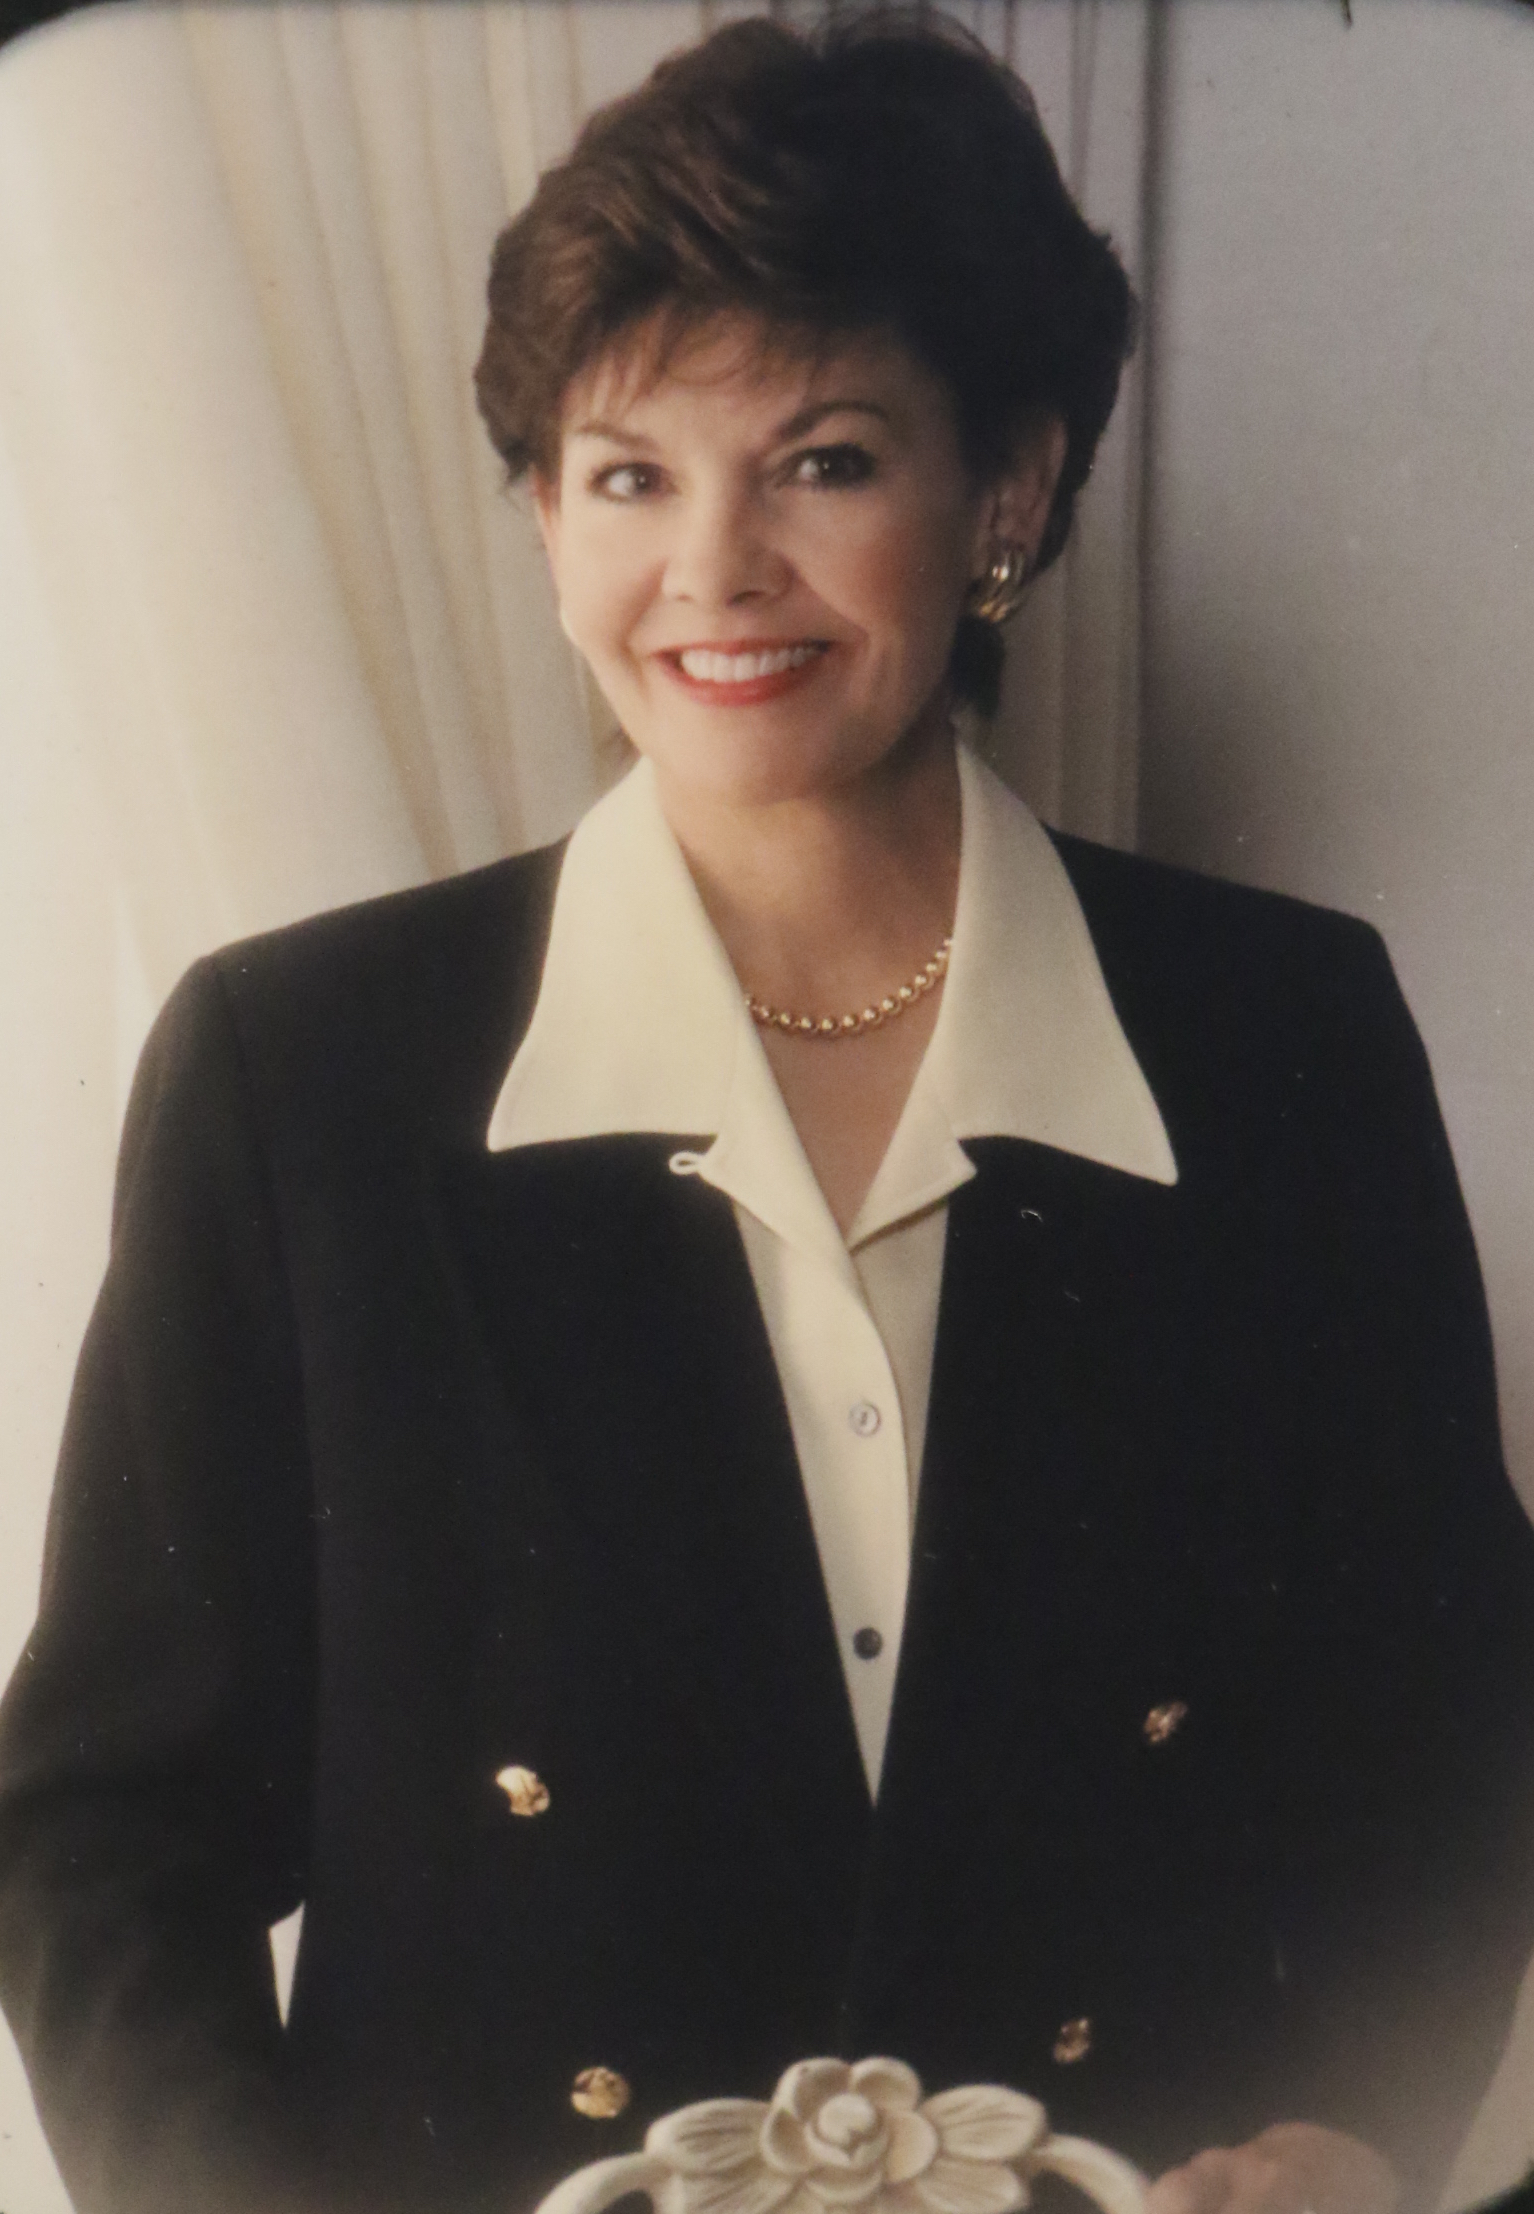 Sister Kristen M. Oaks, wife of President Dallin H. Oaks of the First Presidency, married him when she was 53 years old and he was a member of the Quorum of the Twelve Apostles.